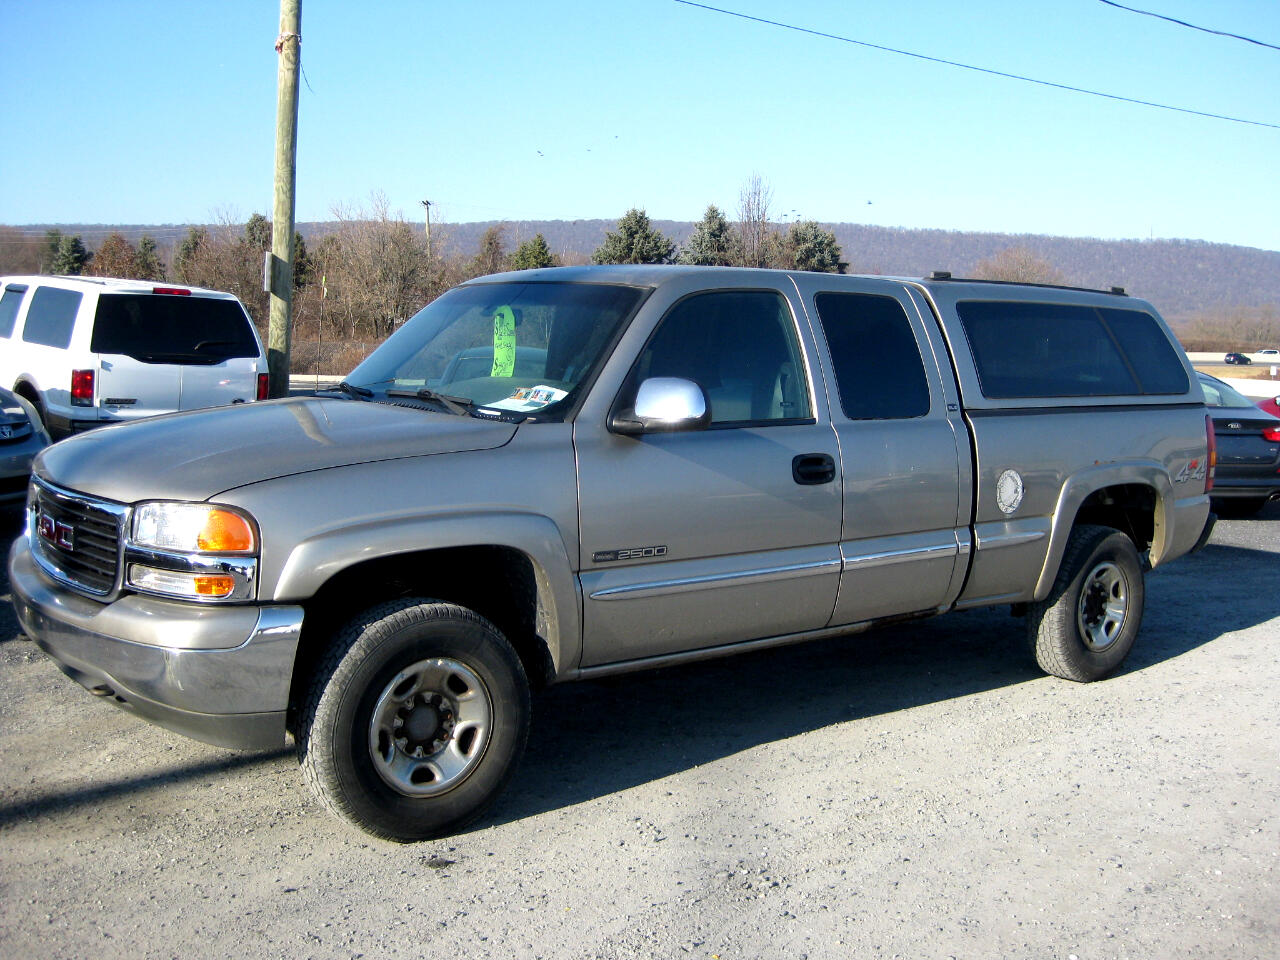 2000 GMC New Sierra 2500 HD 4dr Ext Cab 143.5